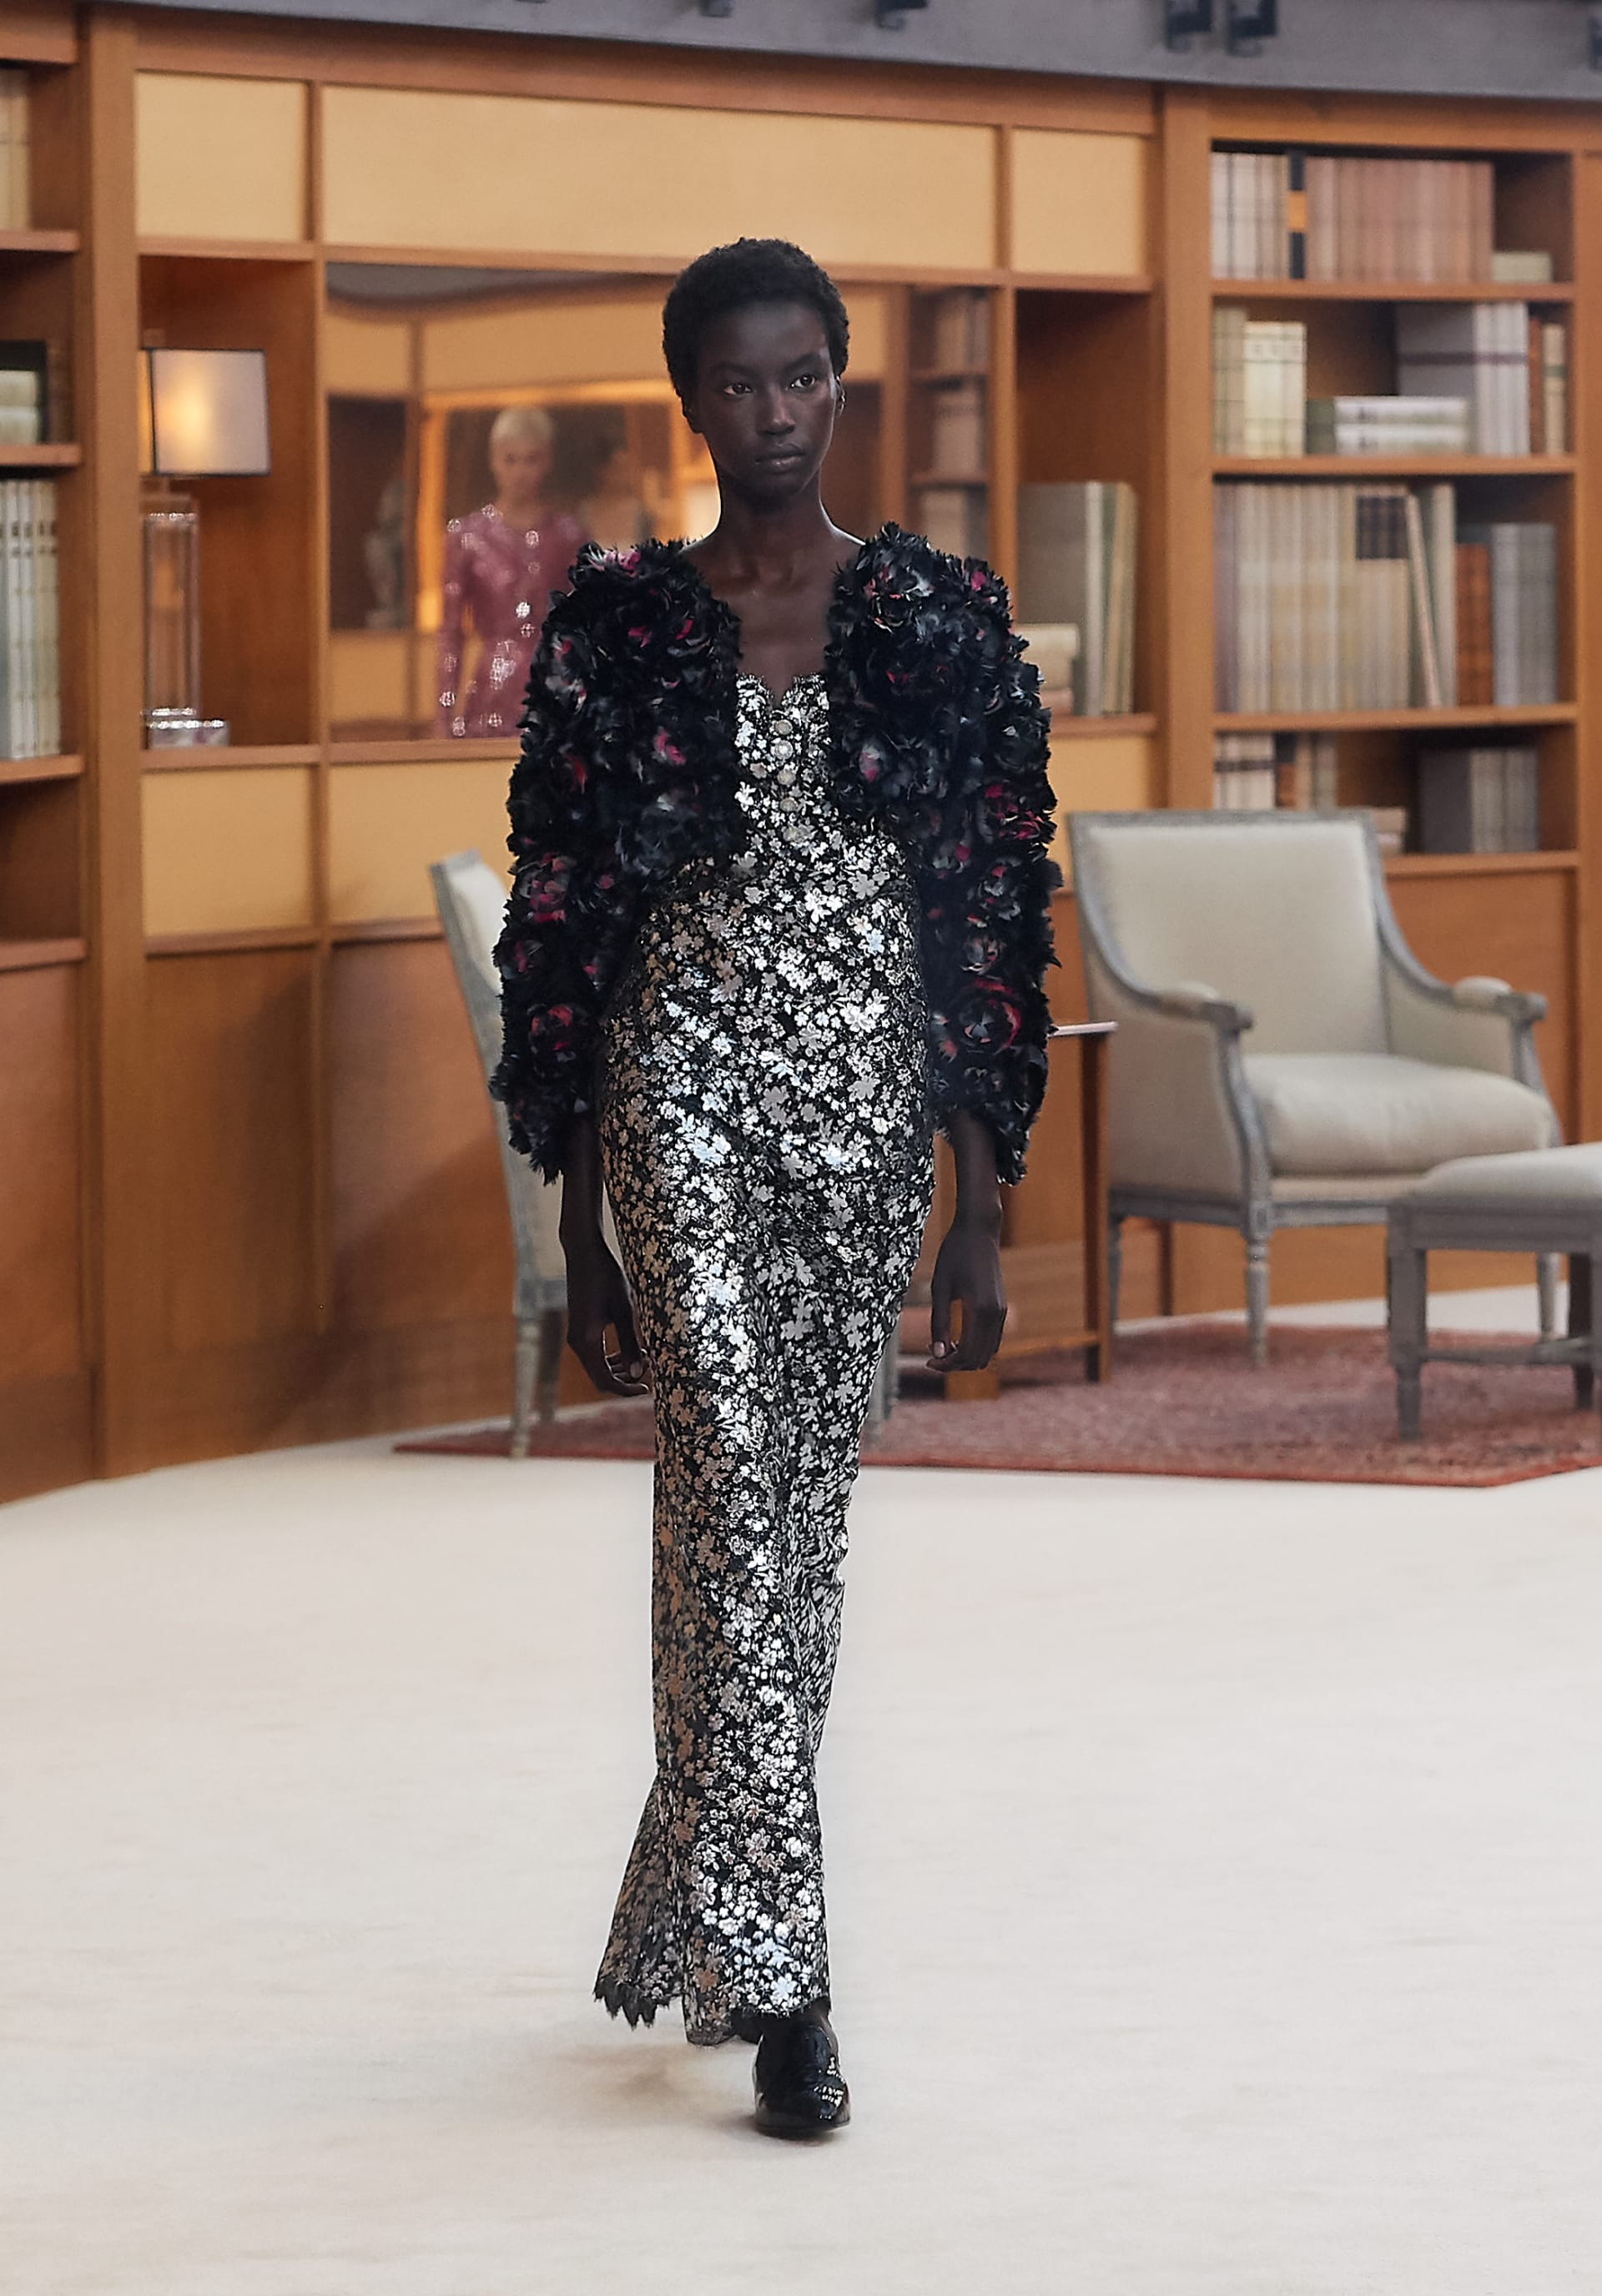 View 1 - Look 47 - Fall-Winter 2019/20 Haute-Couture - see full sized version